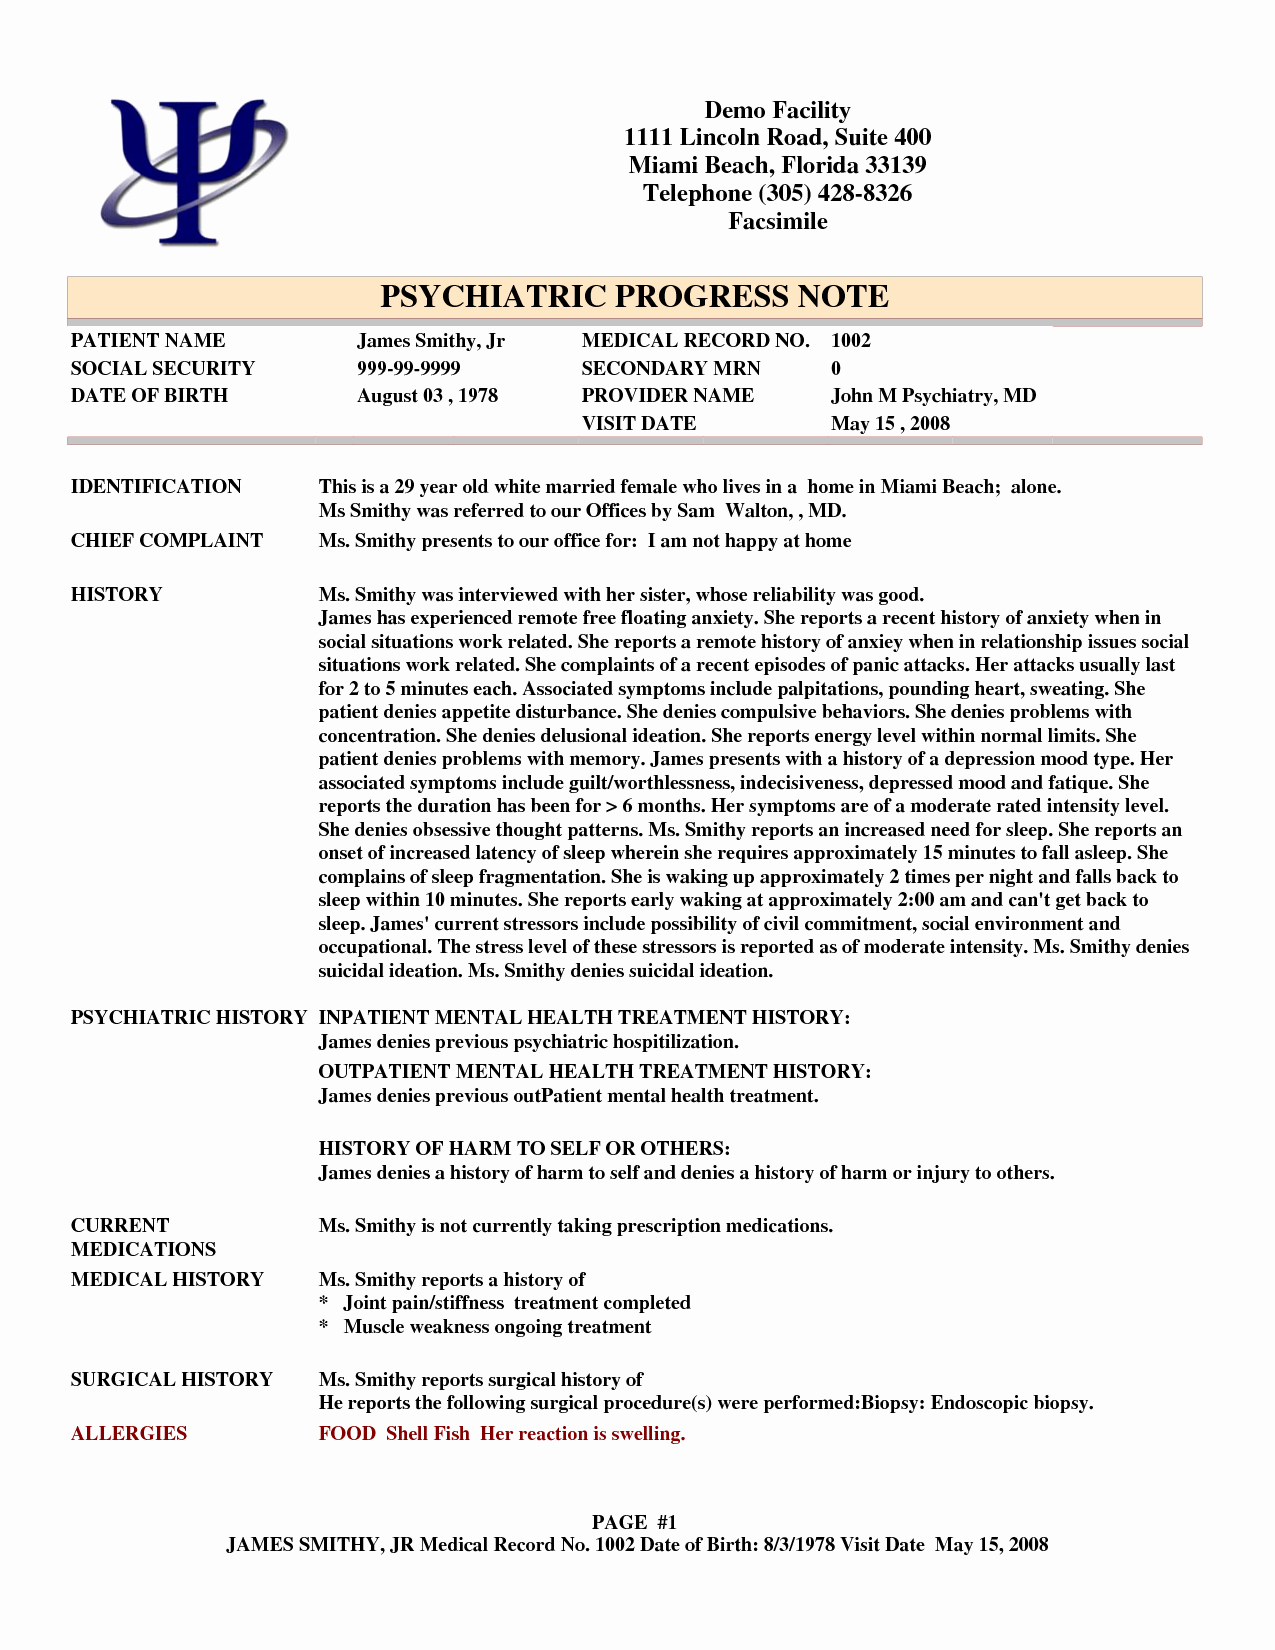 Psychotherapy Progress Note Template Pdf Inspirational Psychotherapy Progress Notes Template Google Search